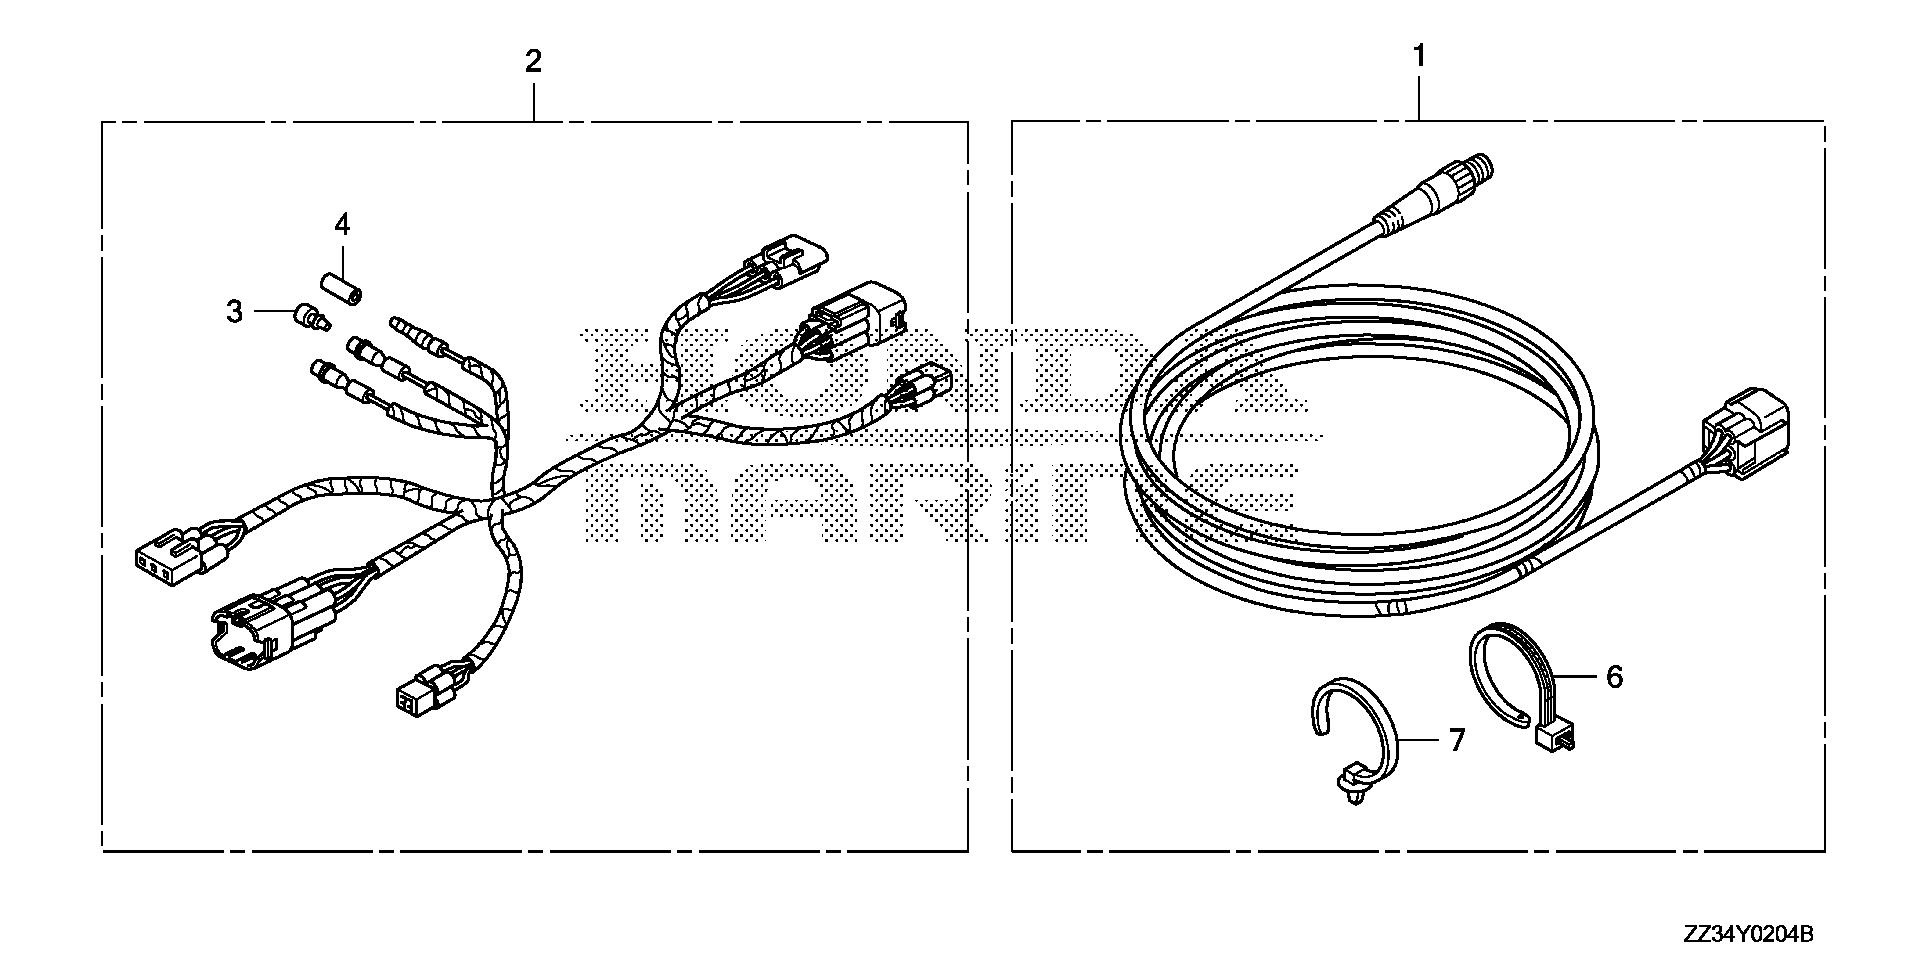 INTERFACE CABLE KIT